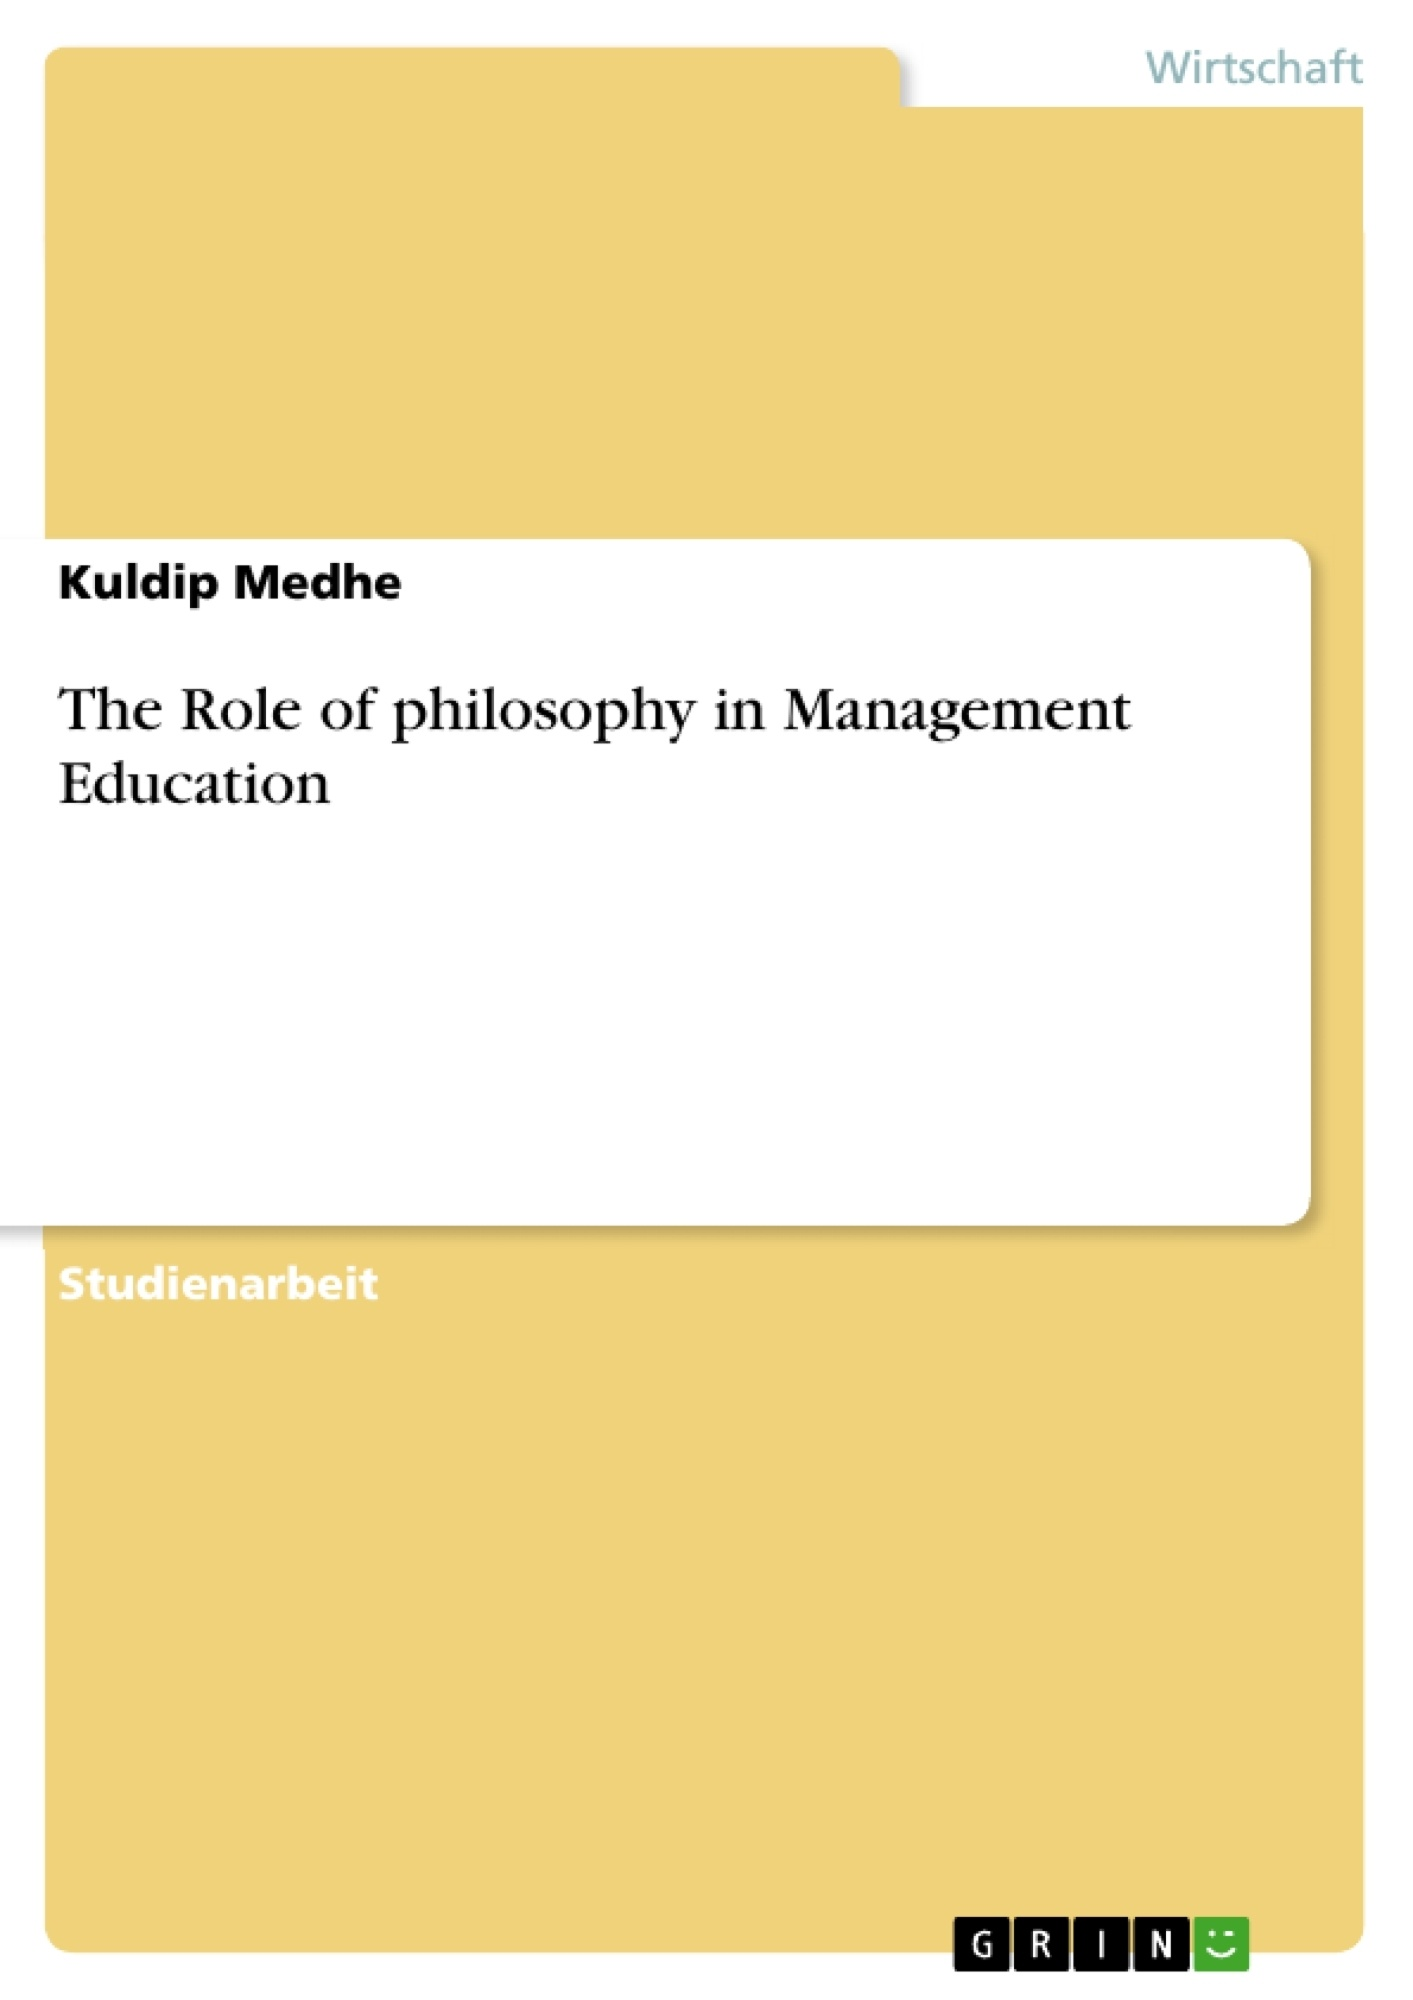 Titel: The Role of philosophy in Management Education